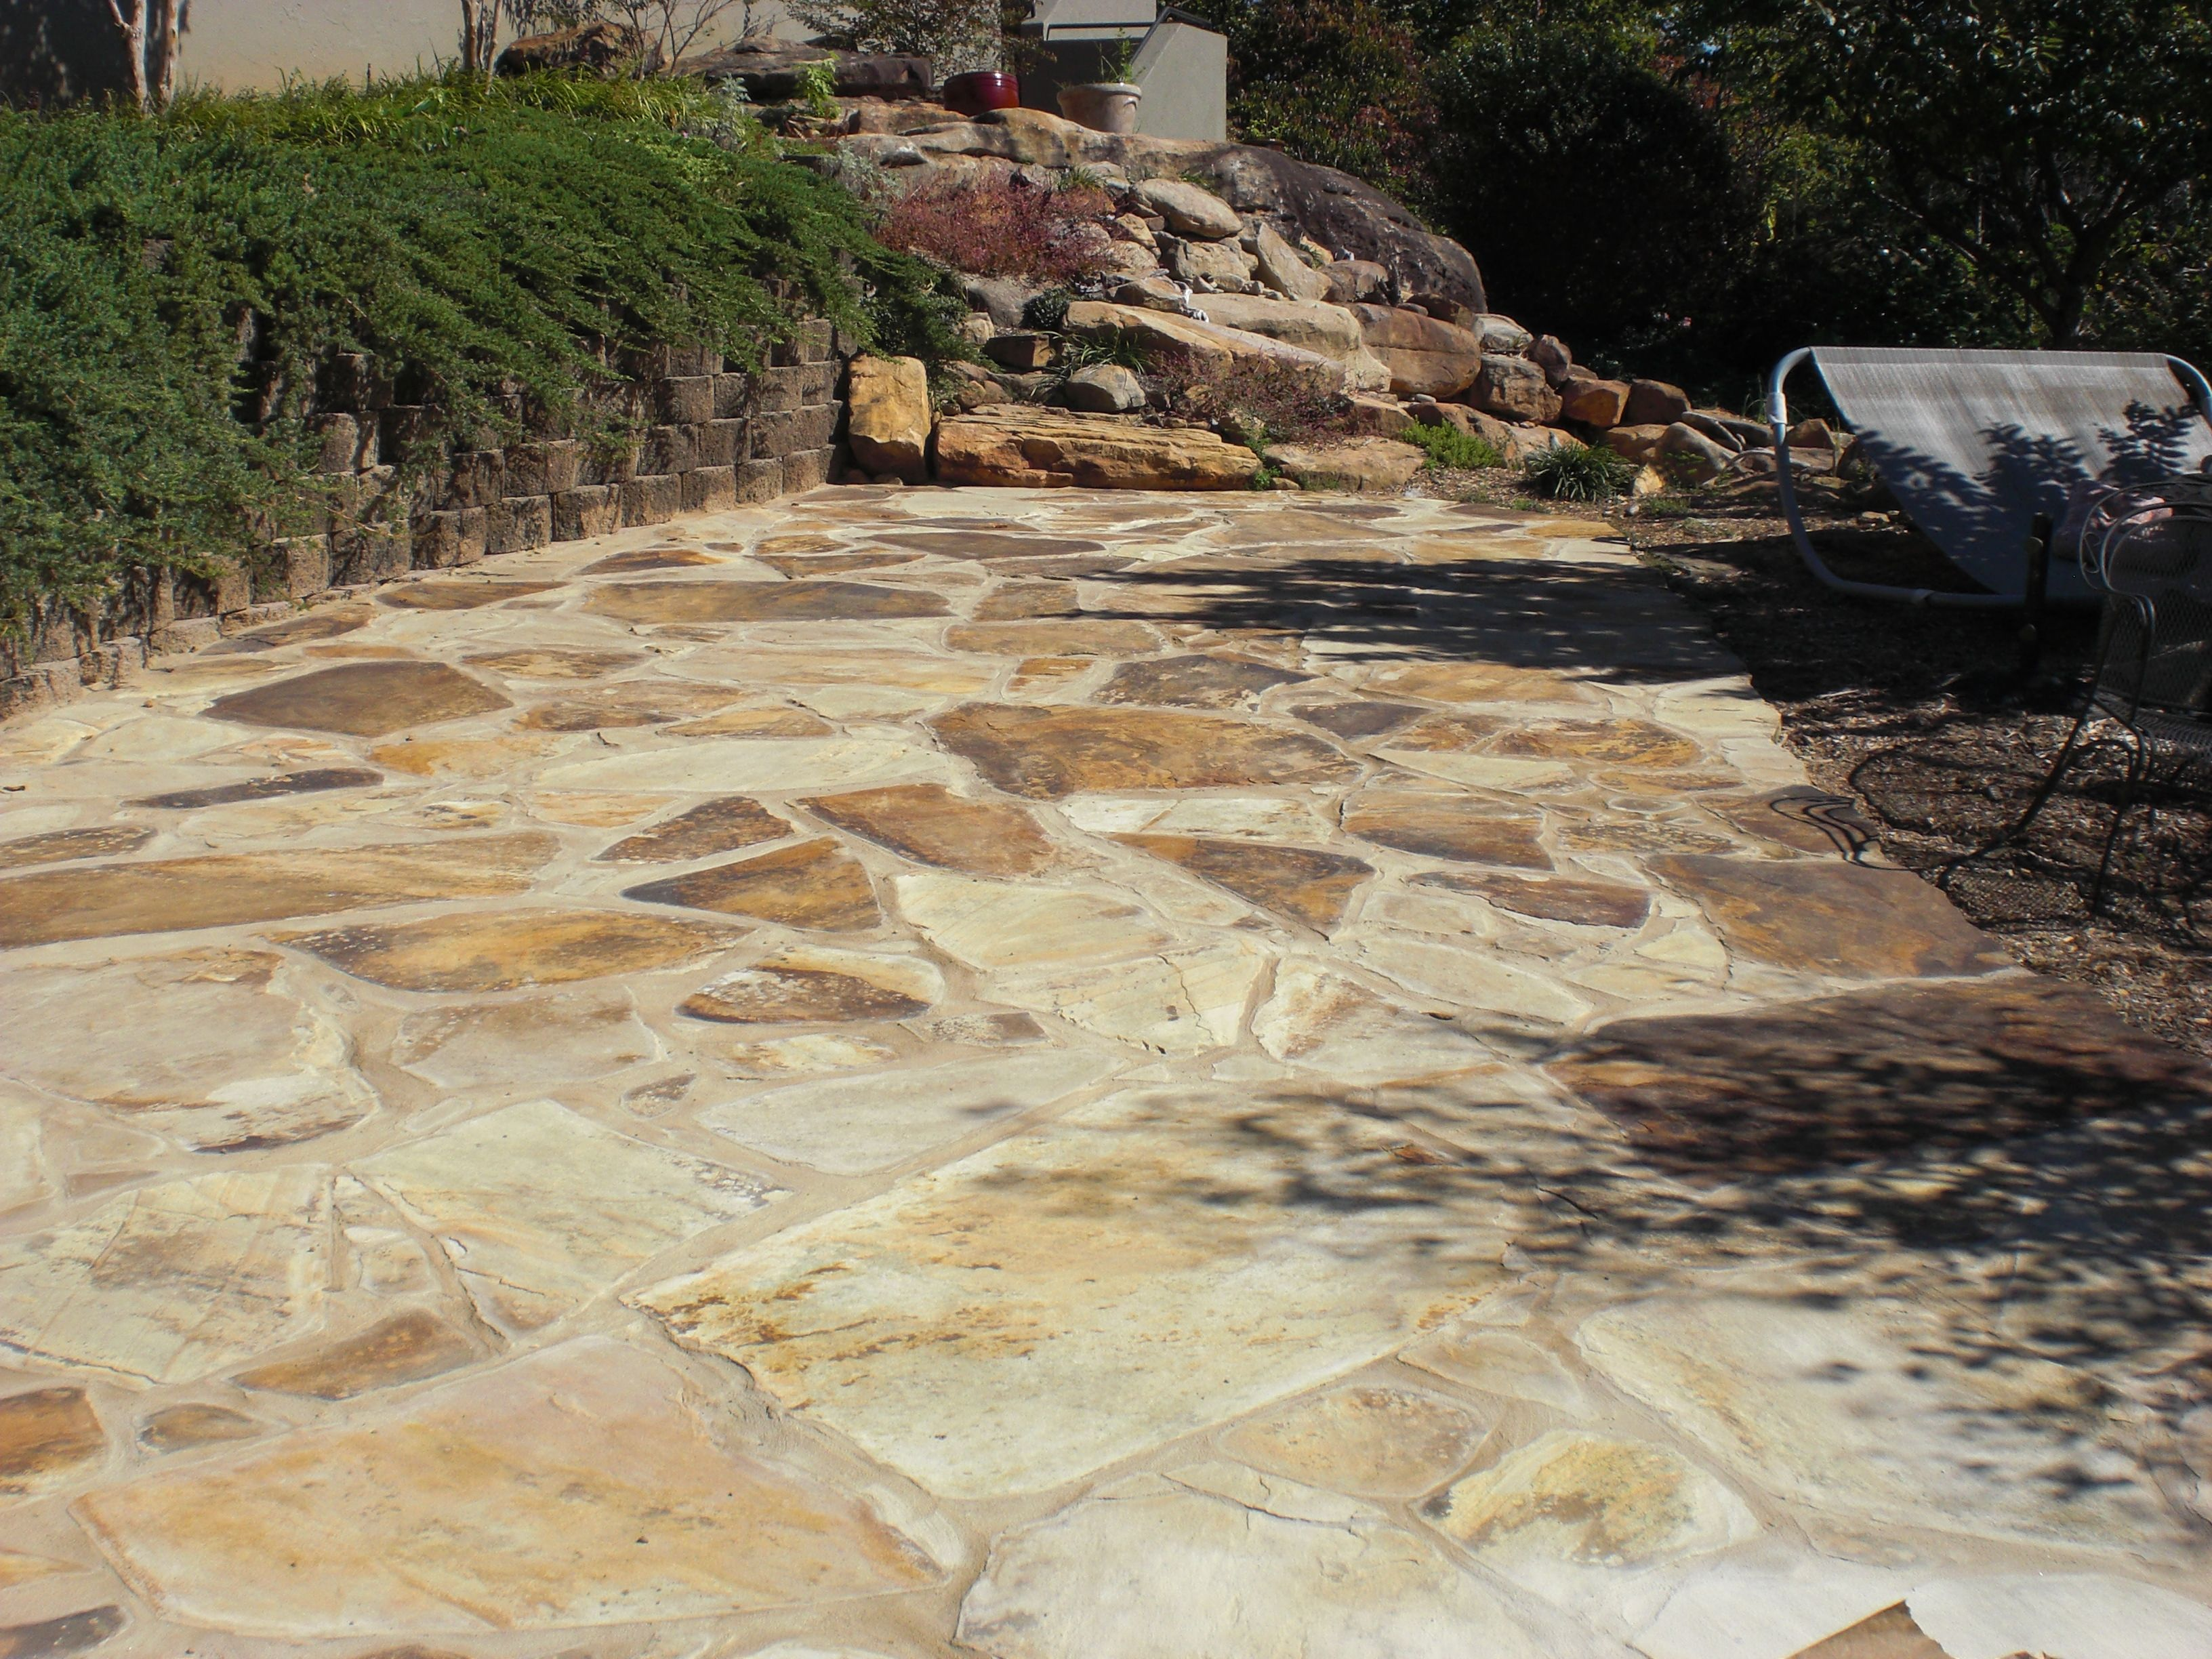 Repairs To The Mortar On This Flagstone Patio Made It Look Like New No Show Waterproofing System Was Used To Seal The Flag Flagstone Patio Patio Porch Patio